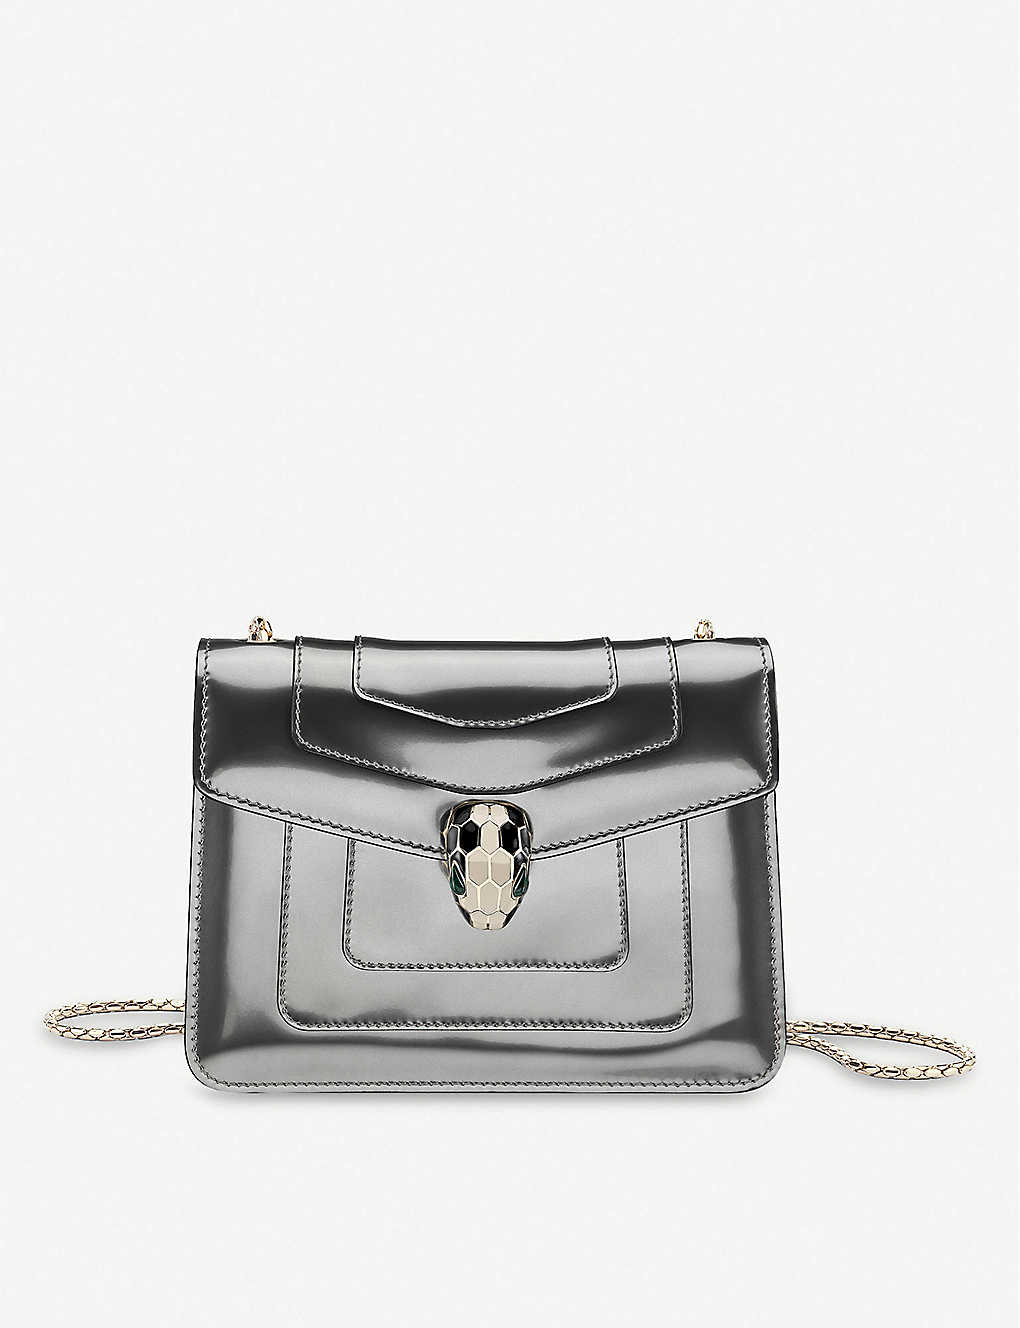 Bvlgari Patent Shoulder Bag